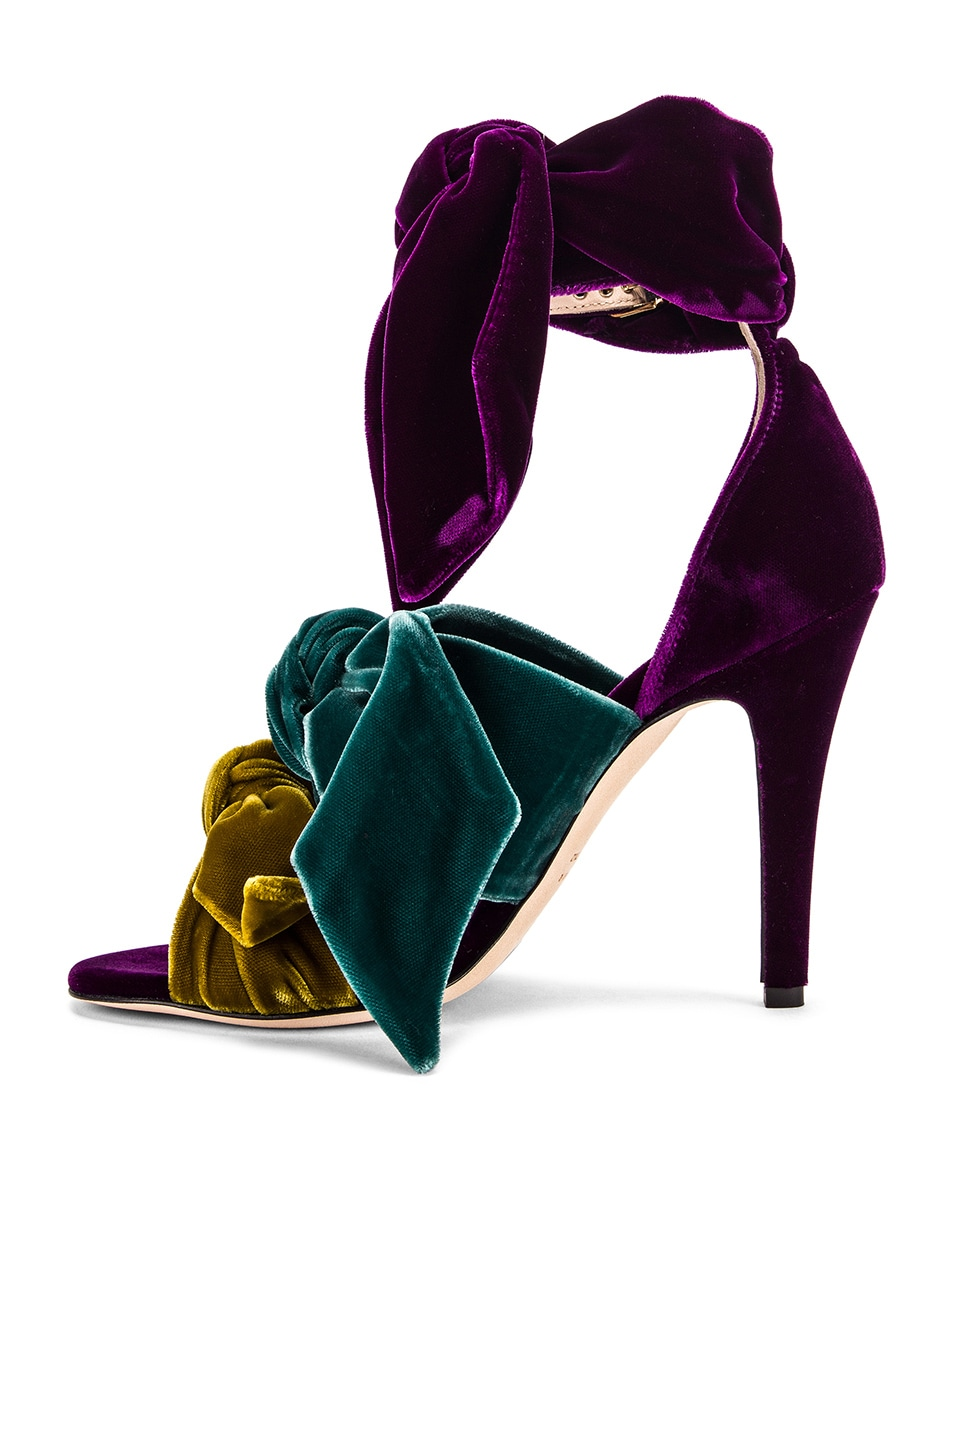 Image 5 of SILVIA TCHERASSI x Gia Couture Bowie Heel in Multi Jewel